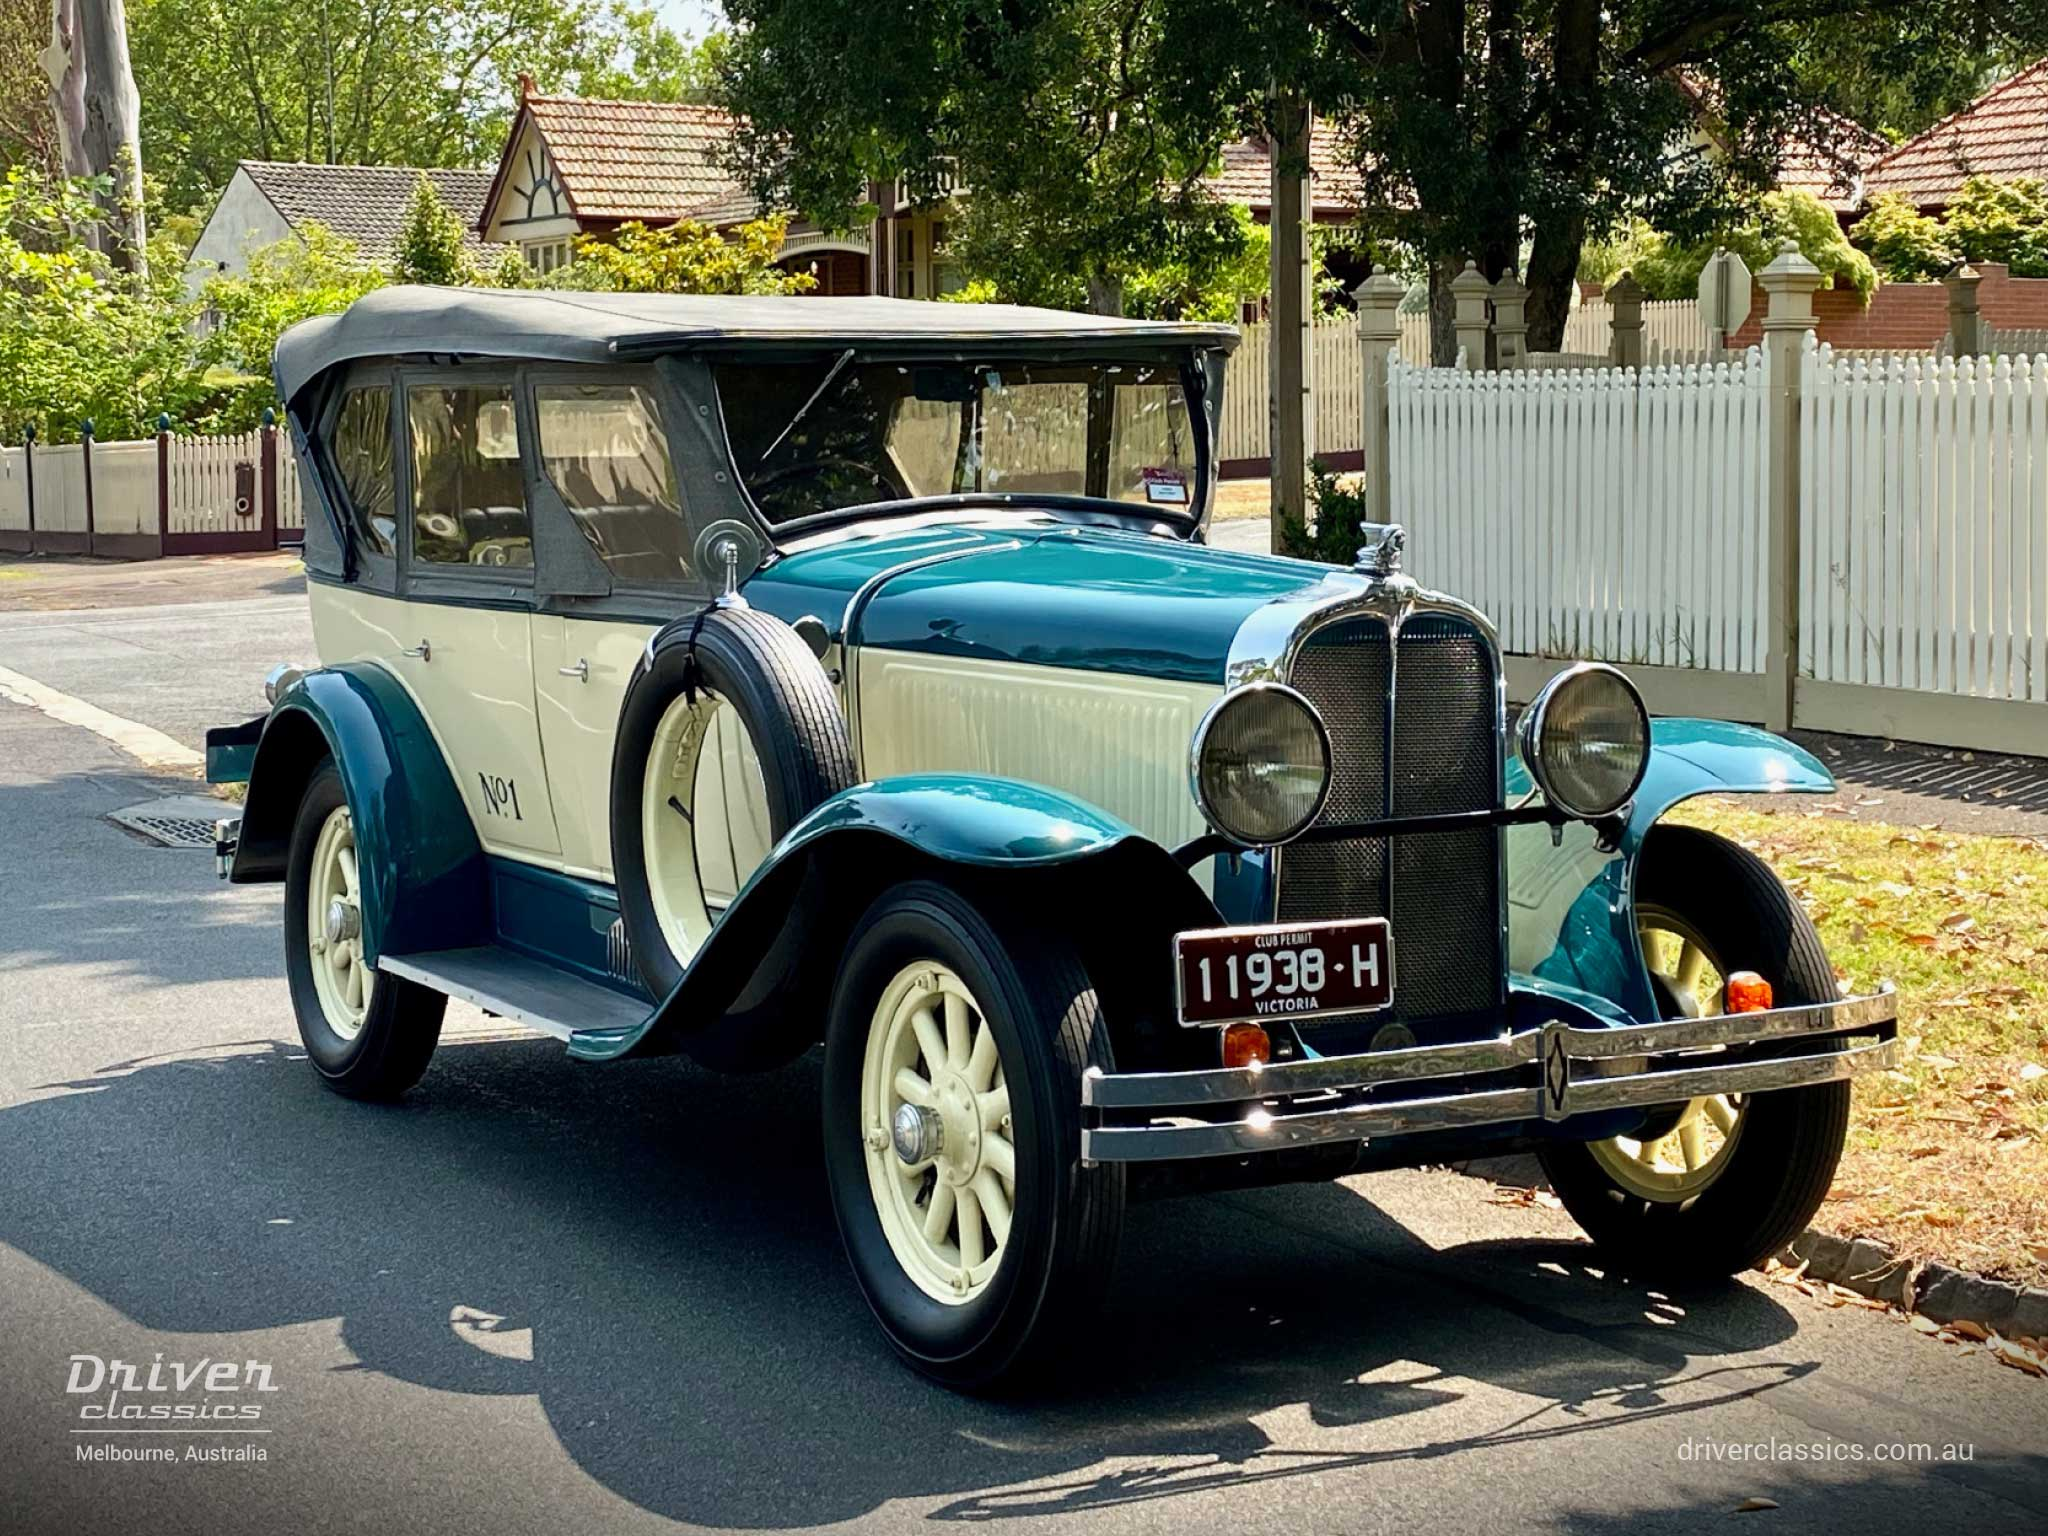 1929 Pontiac 29-6 car, side and front, Camberwell VIC, photo taken August 2015